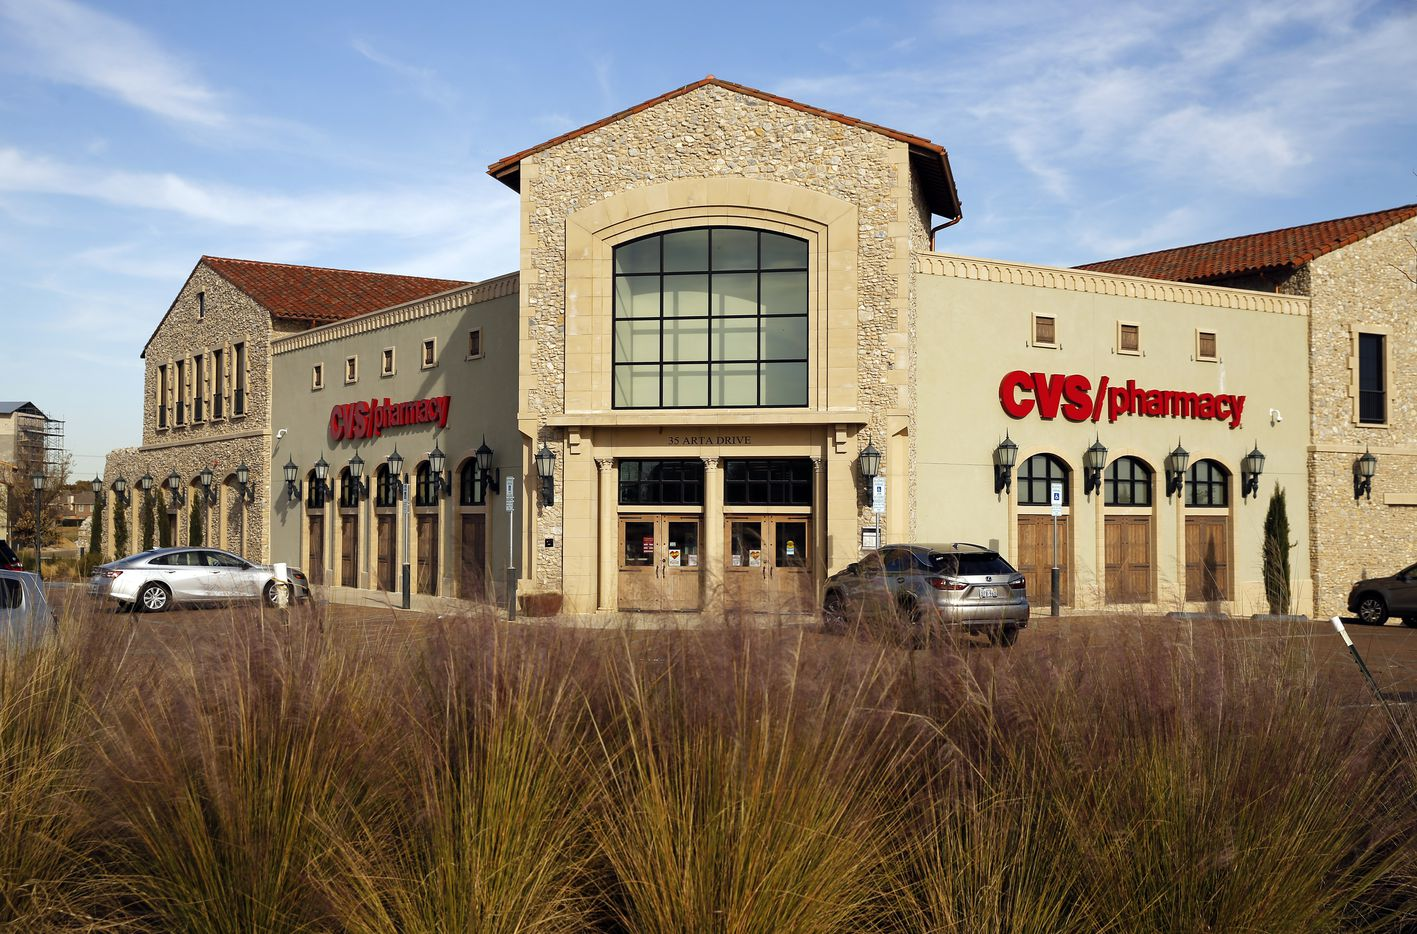 The CVS Pharmacy is unlike any other in the Entrada development in Westlake, Texas.